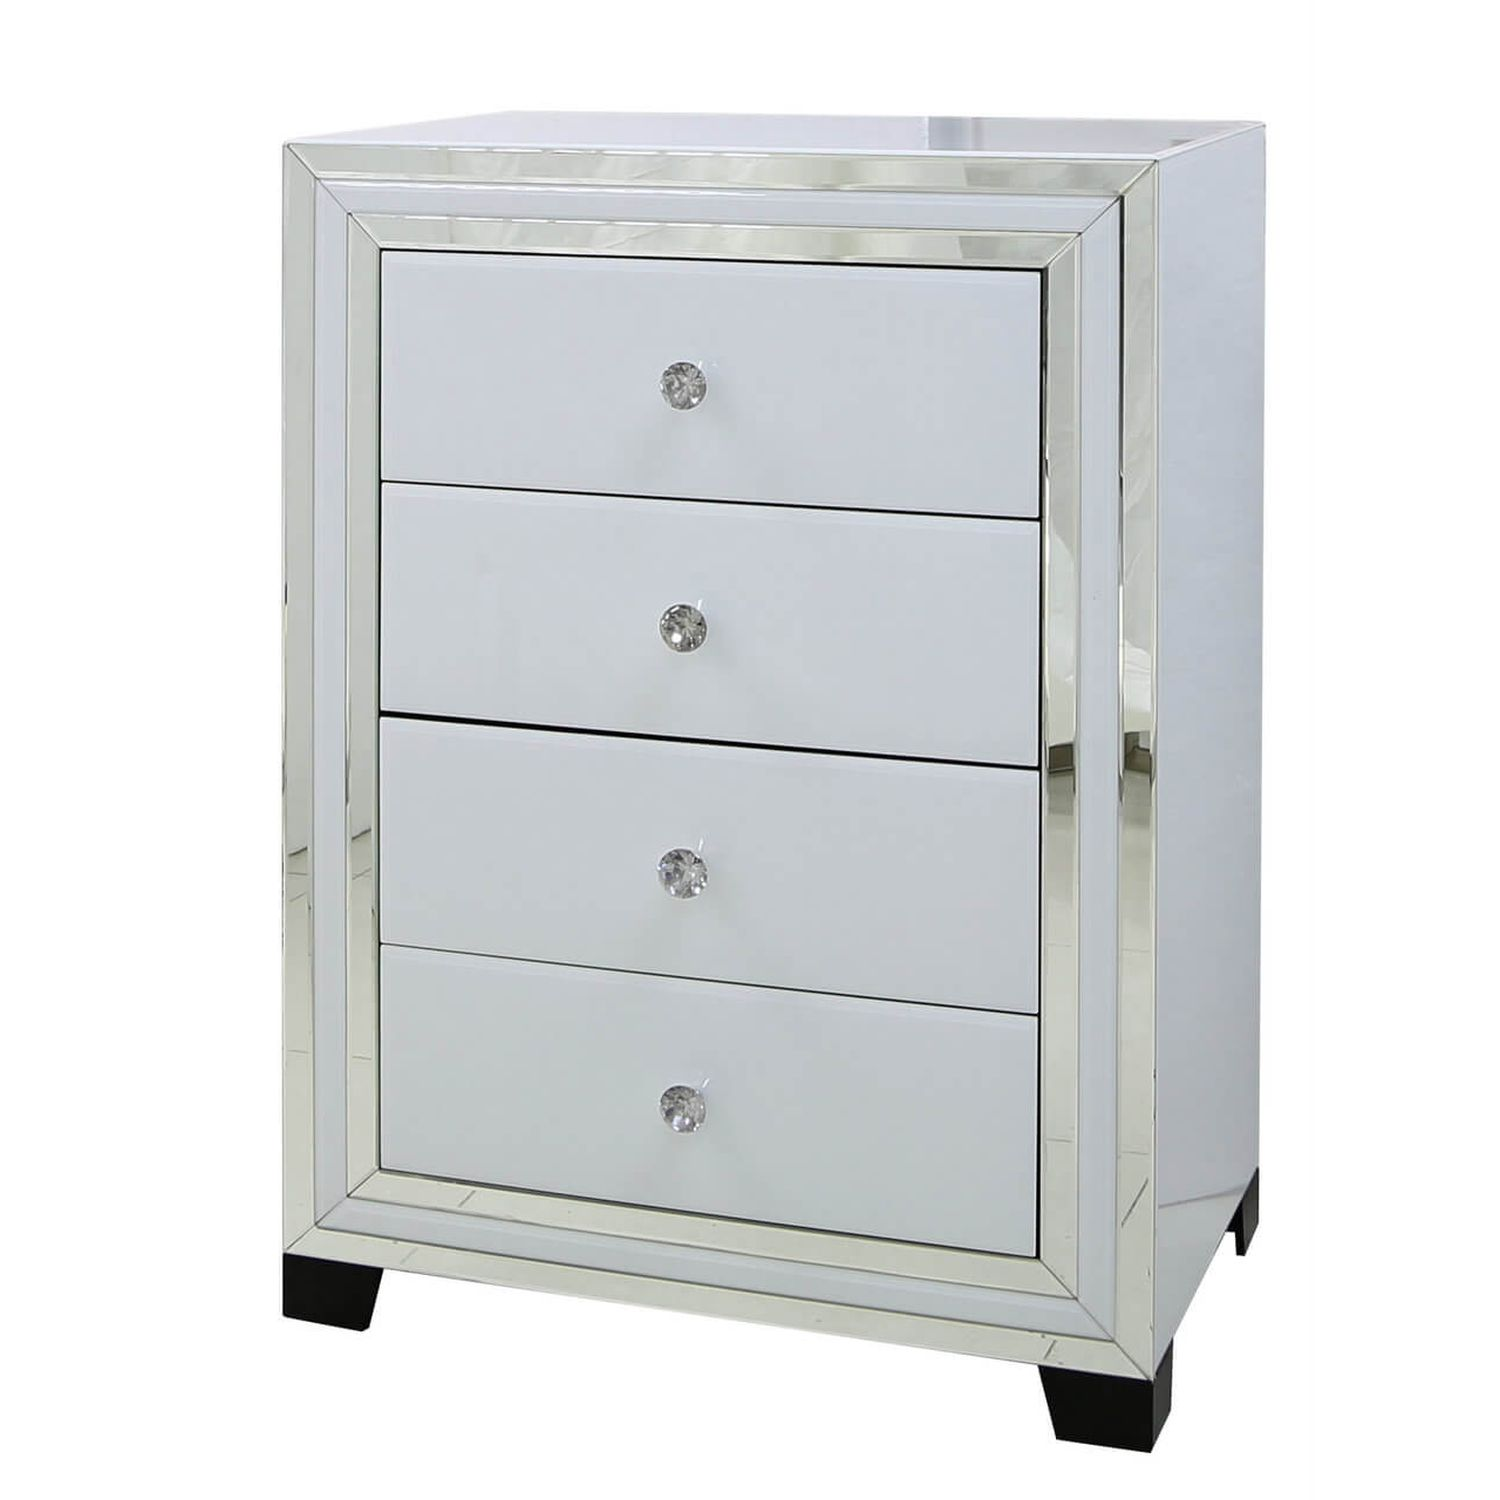 Image of Casa Blanco 4 Drawer Tall Chest